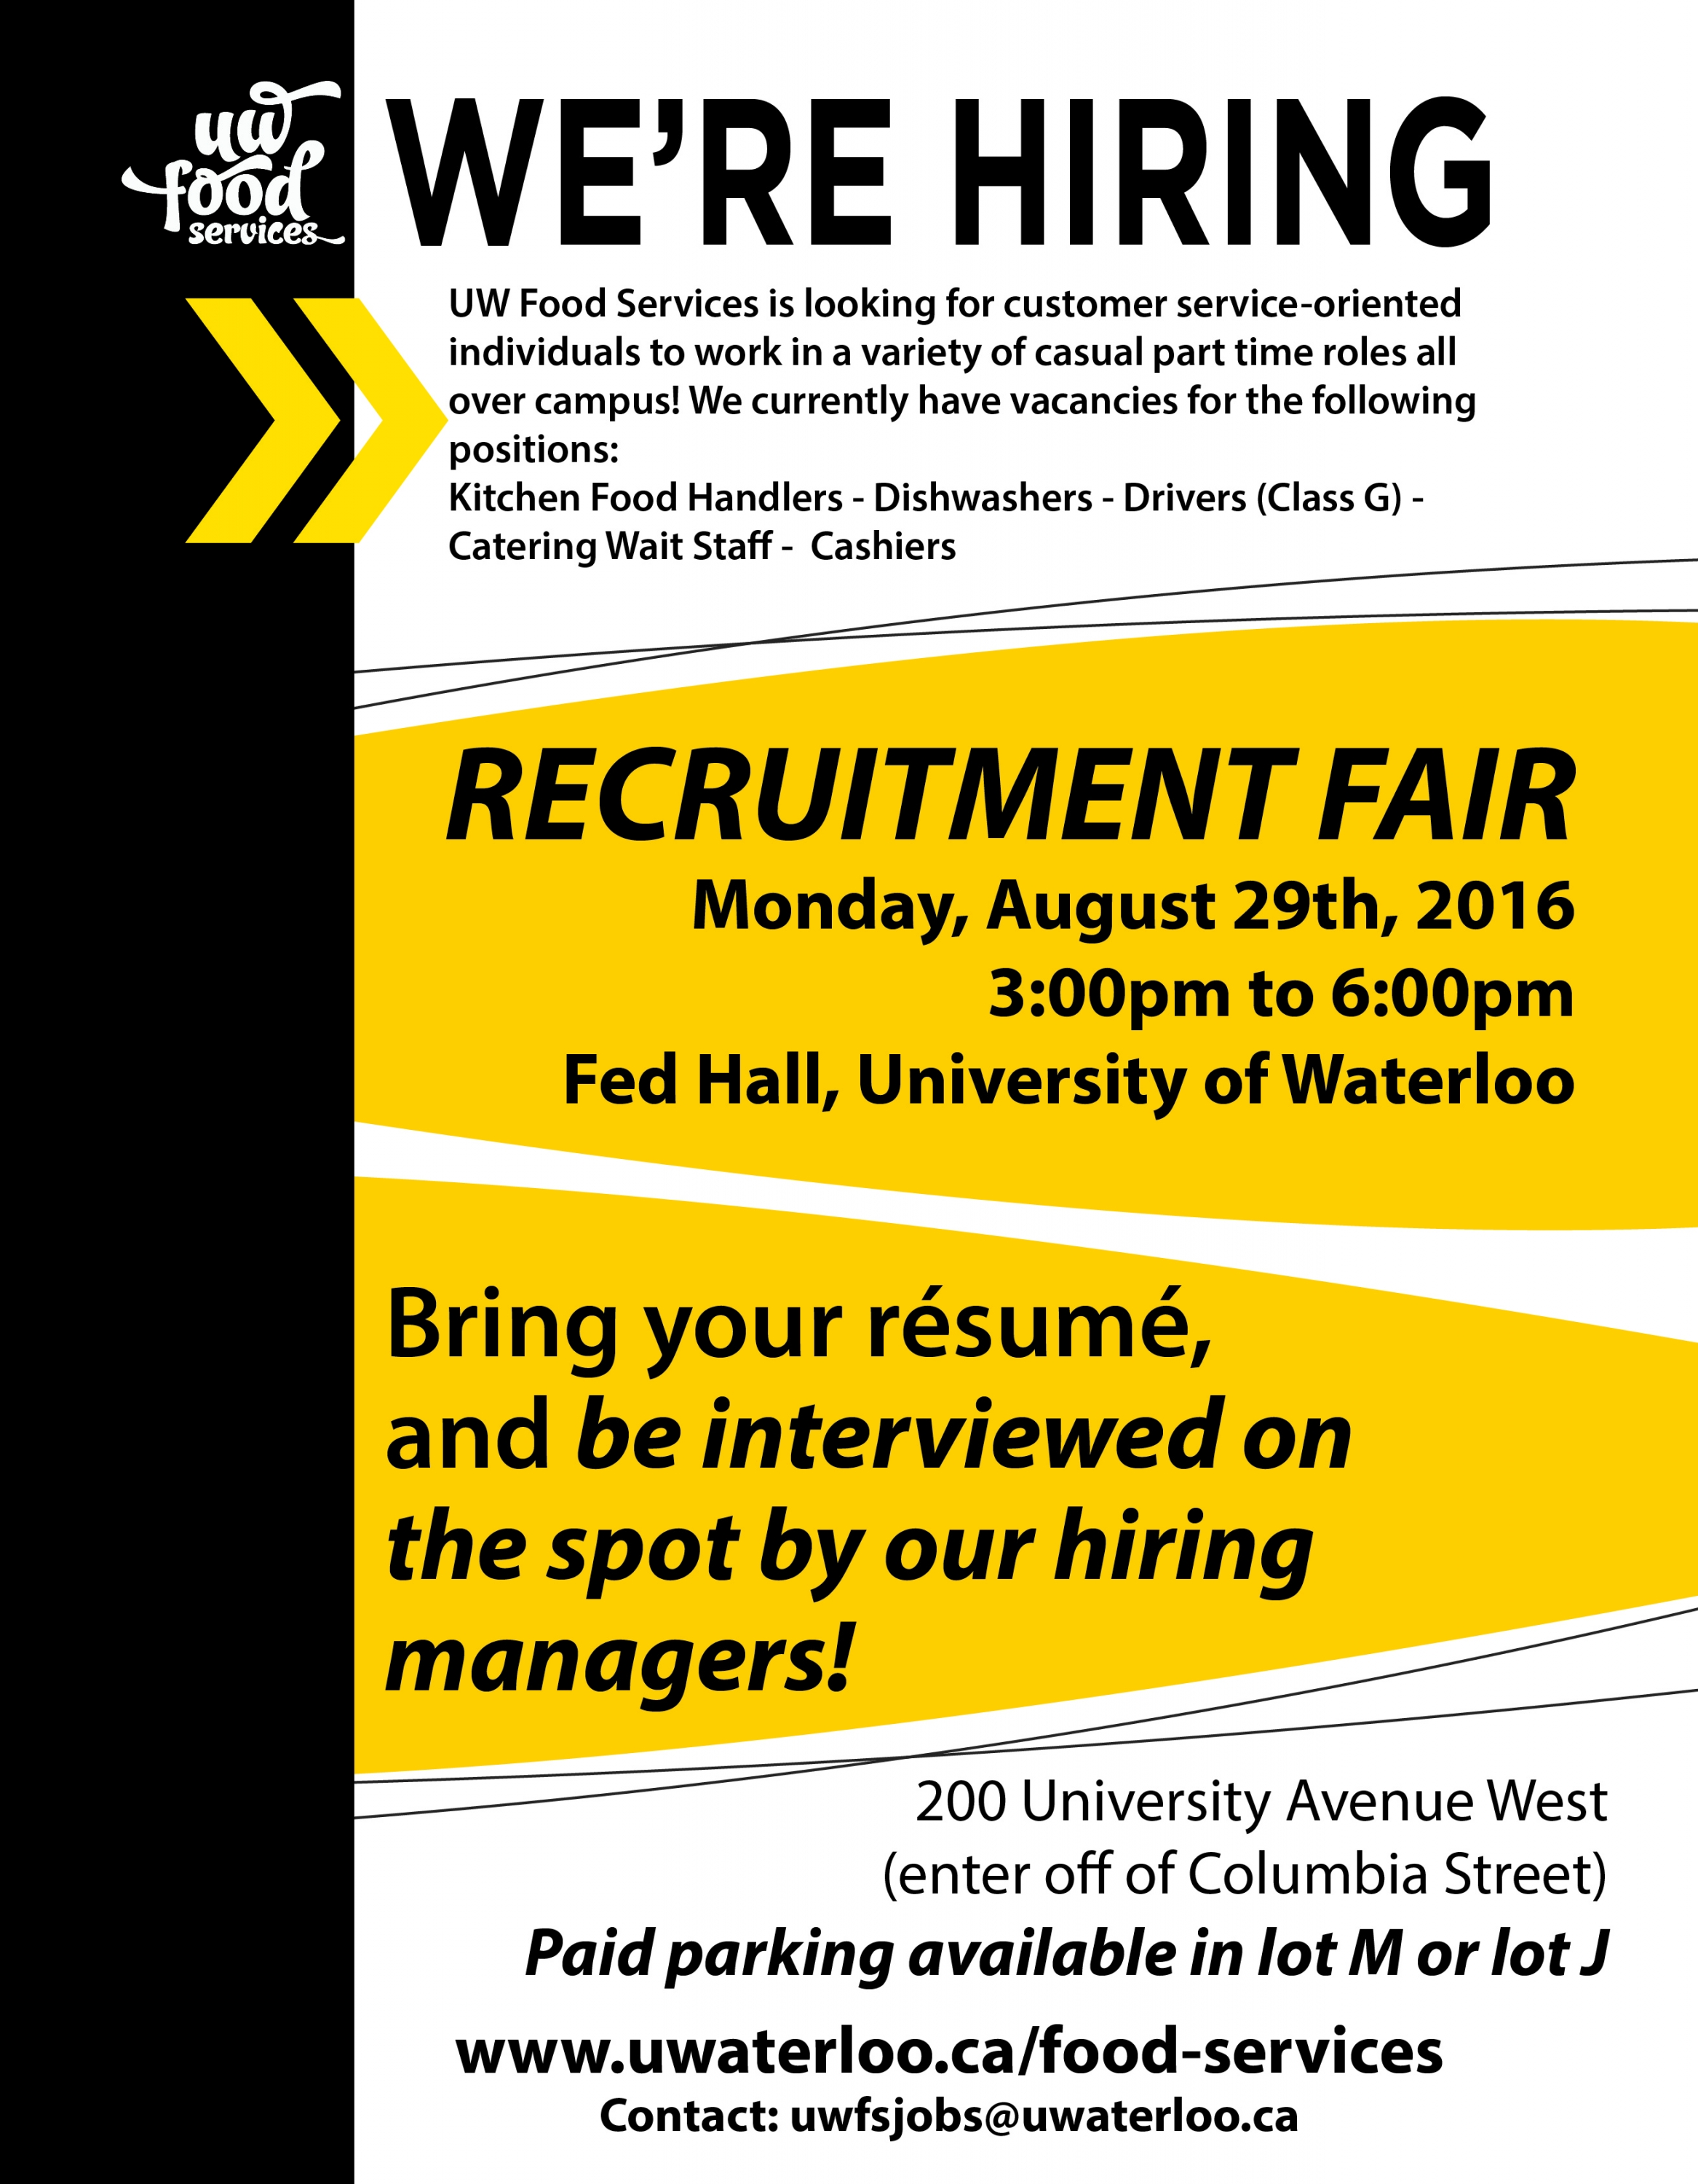 Recruitment Fair August 29th 3:00pm to 6:00pm at Fed Hall. Paid parking available in lot M or lot J